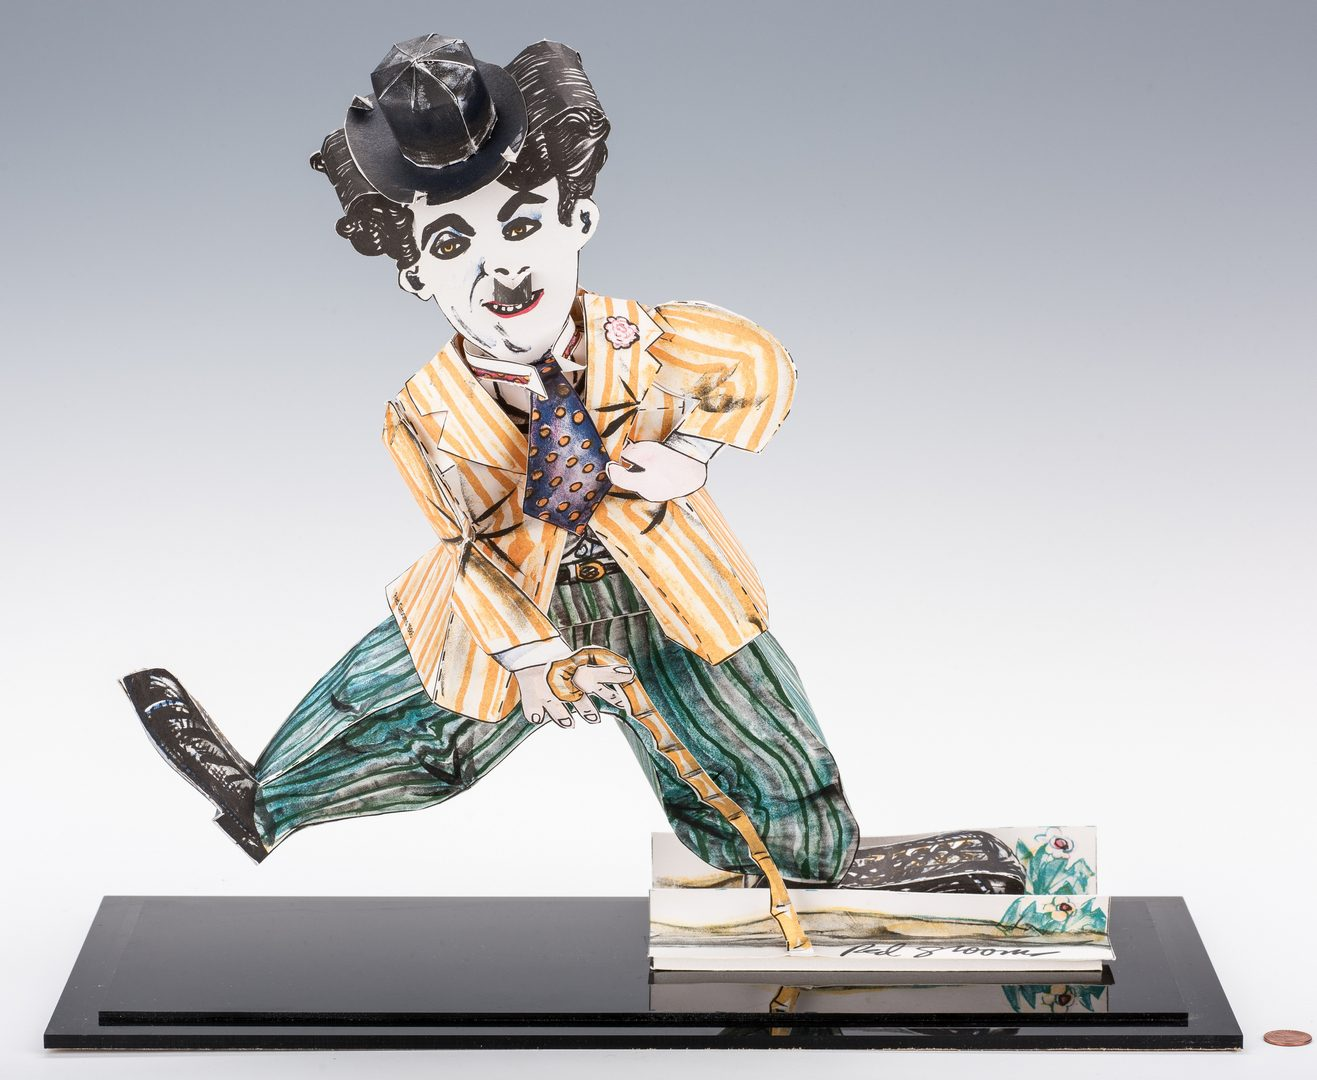 Lot 581: Red Grooms 3D Sculpture of Charlie Chaplin & Exhibit Catalog